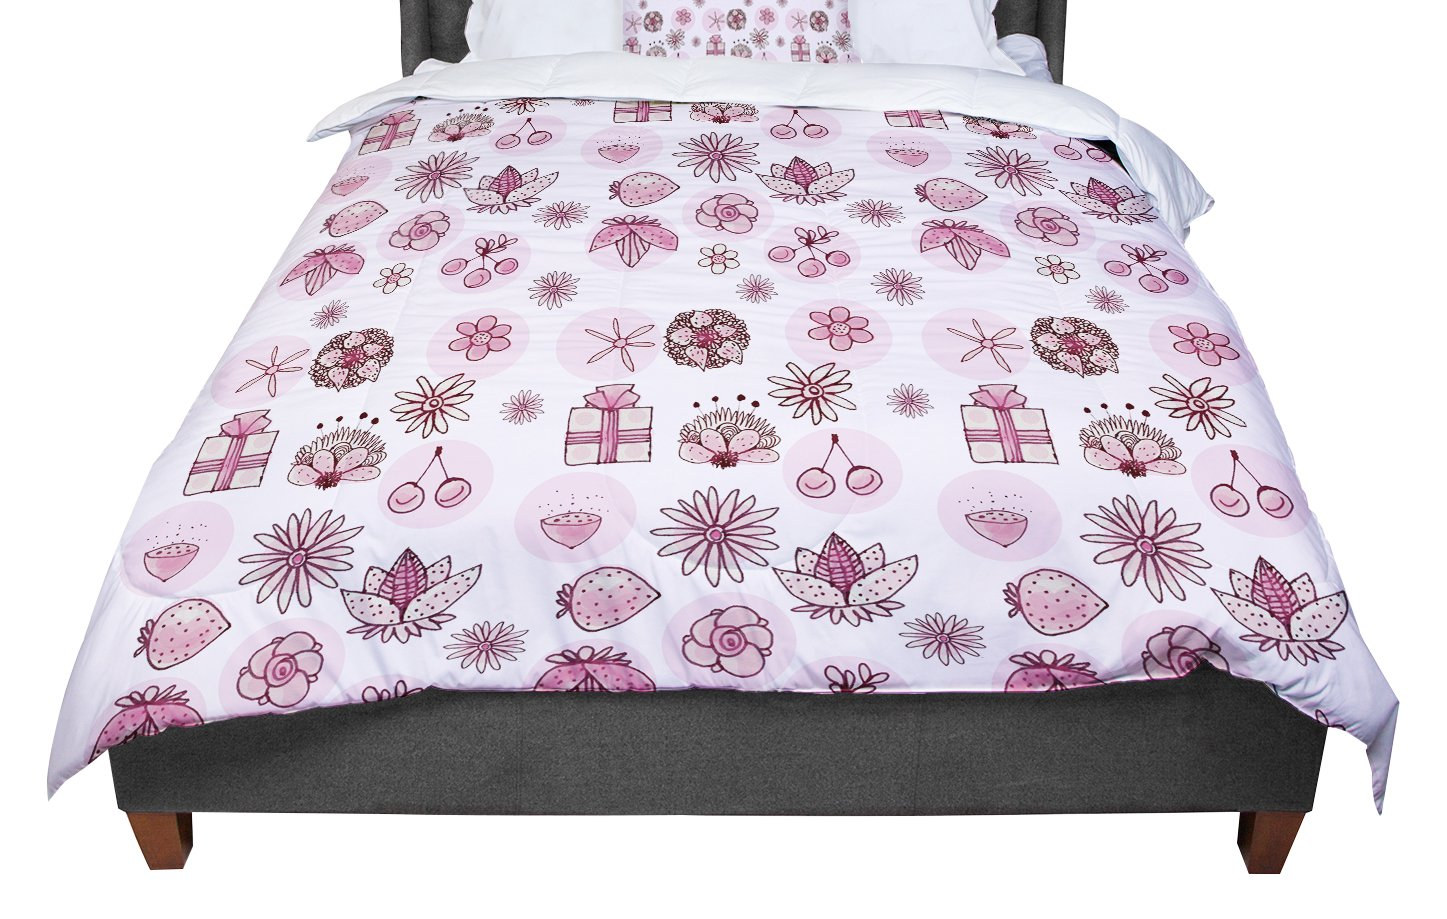 KESS InHouse Marianna Tankelevich 'Cute Stuff' Pink Illustration King / Cal King Comforter, 104' X 88'